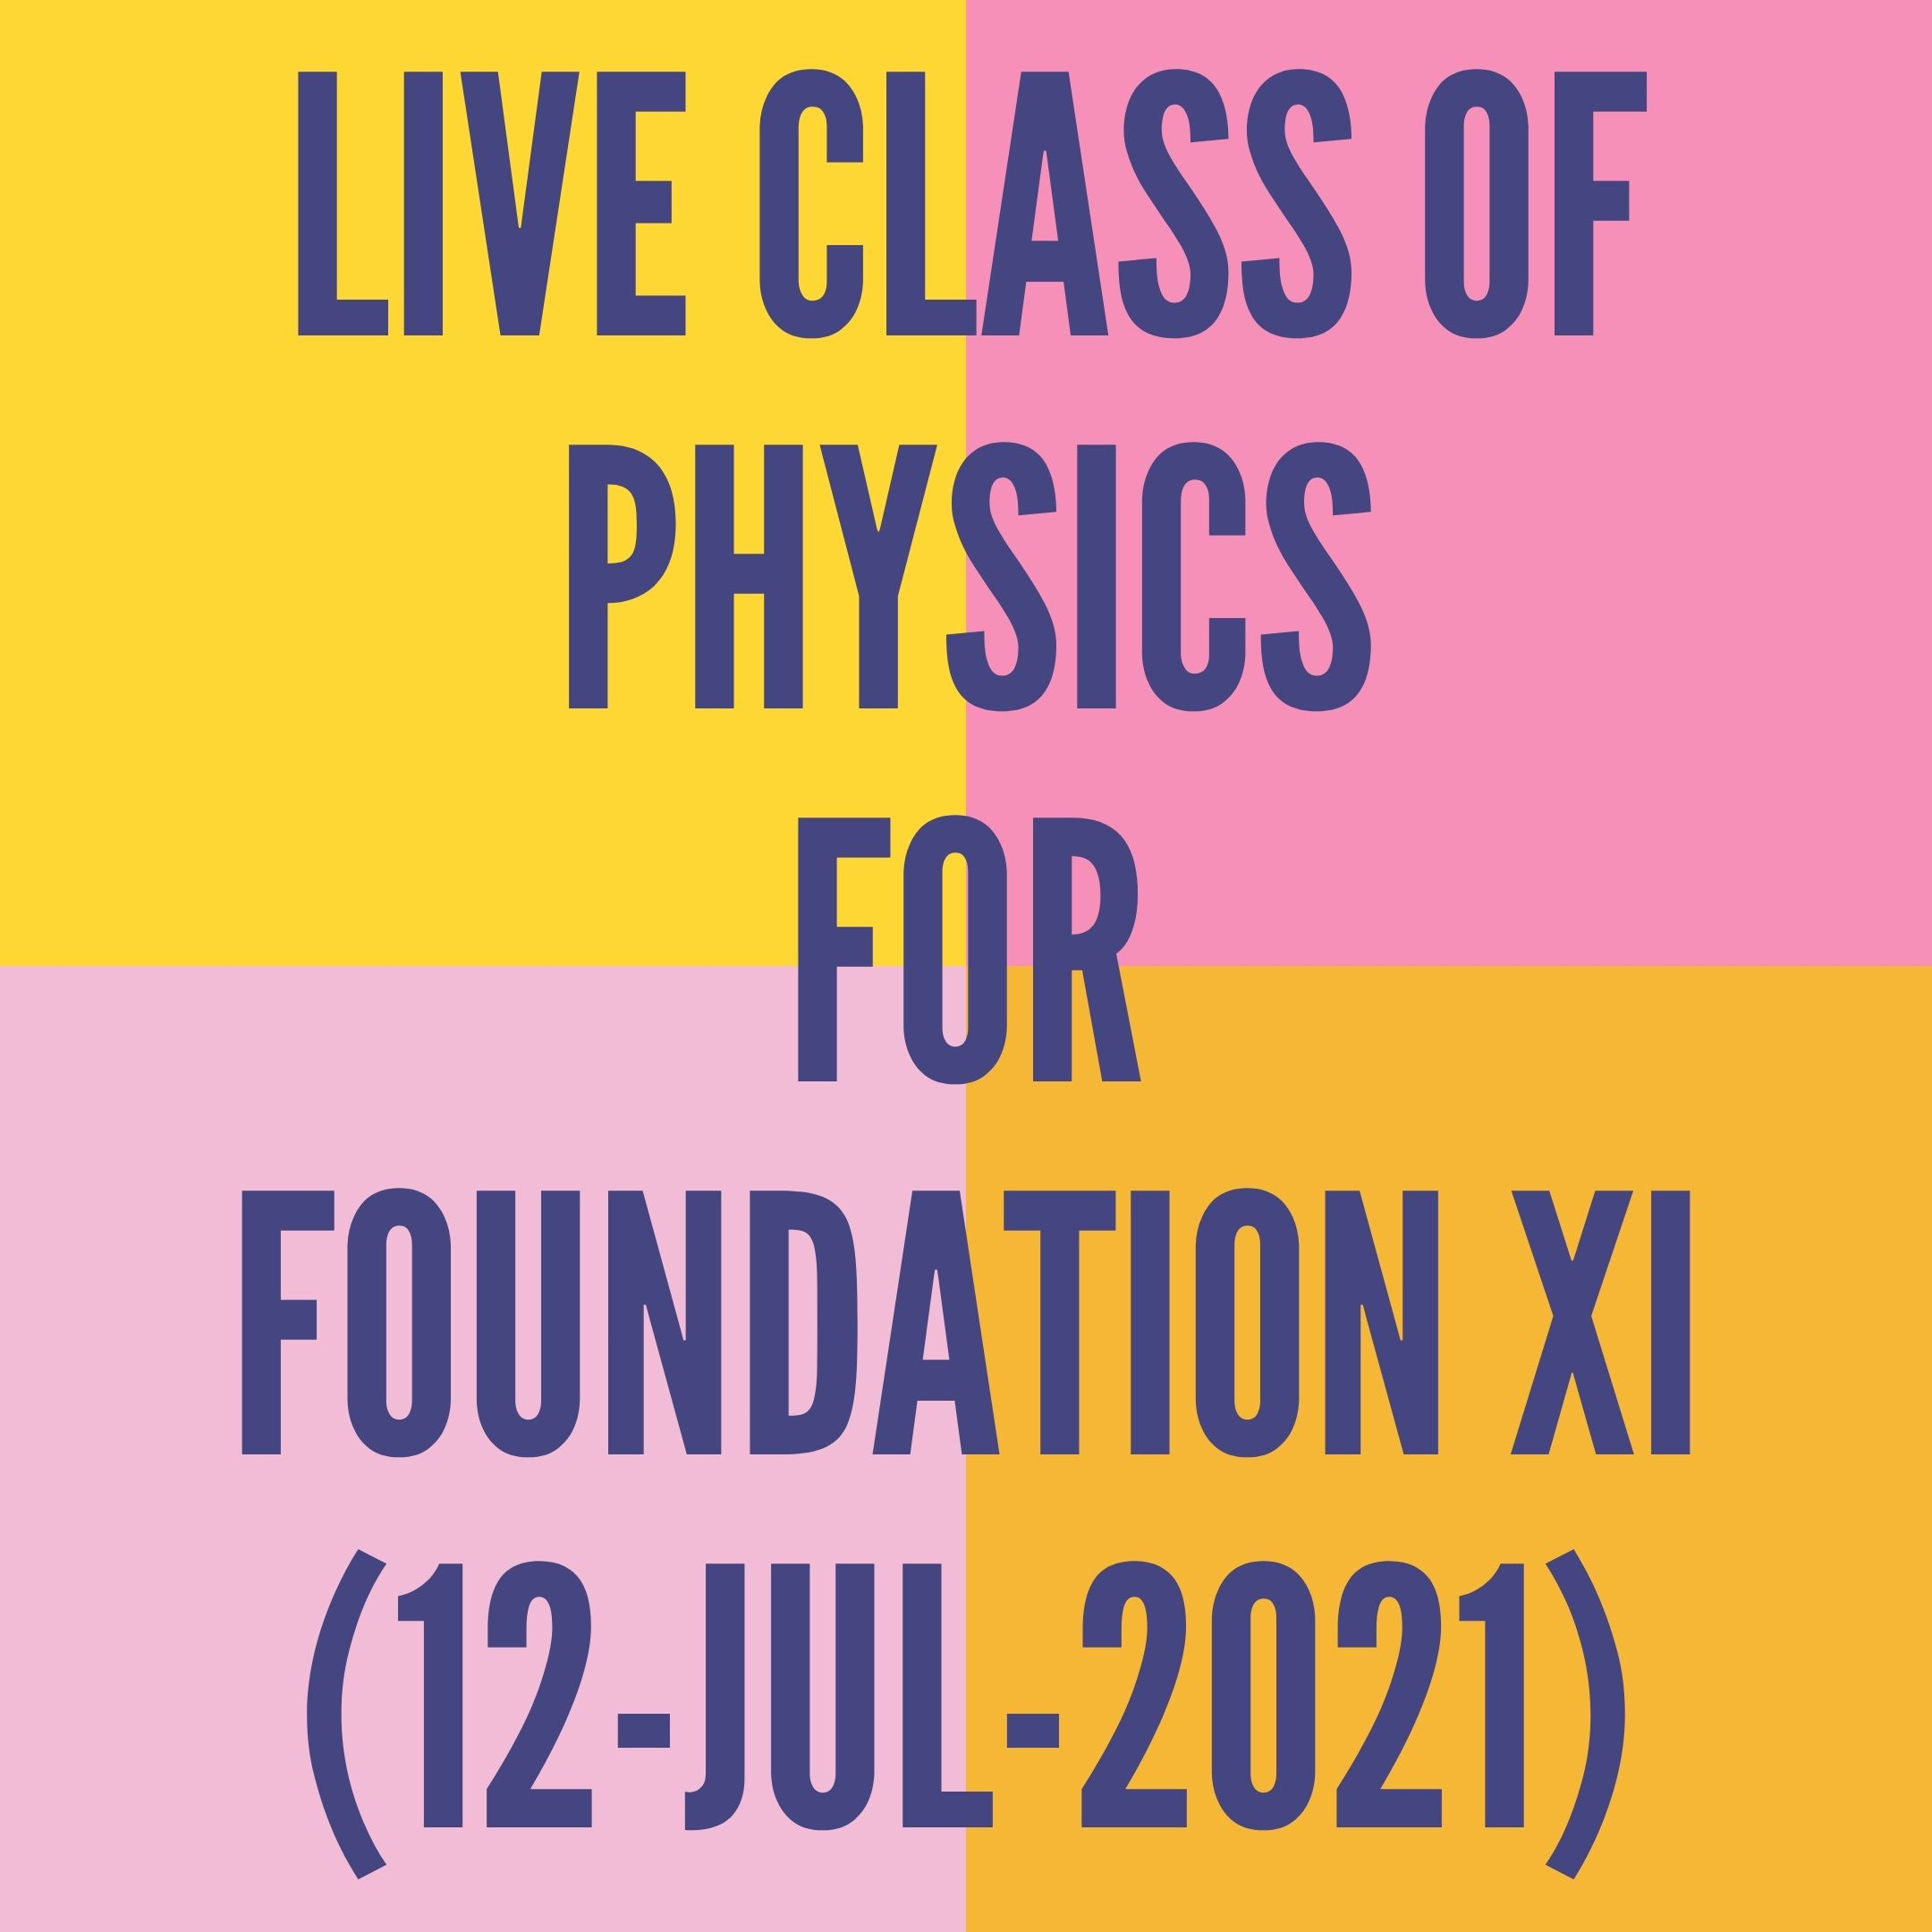 LIVE CLASS OF PHYSICS FOR FOUNDATION XI (12-JUL-2021) APPLIED MATH